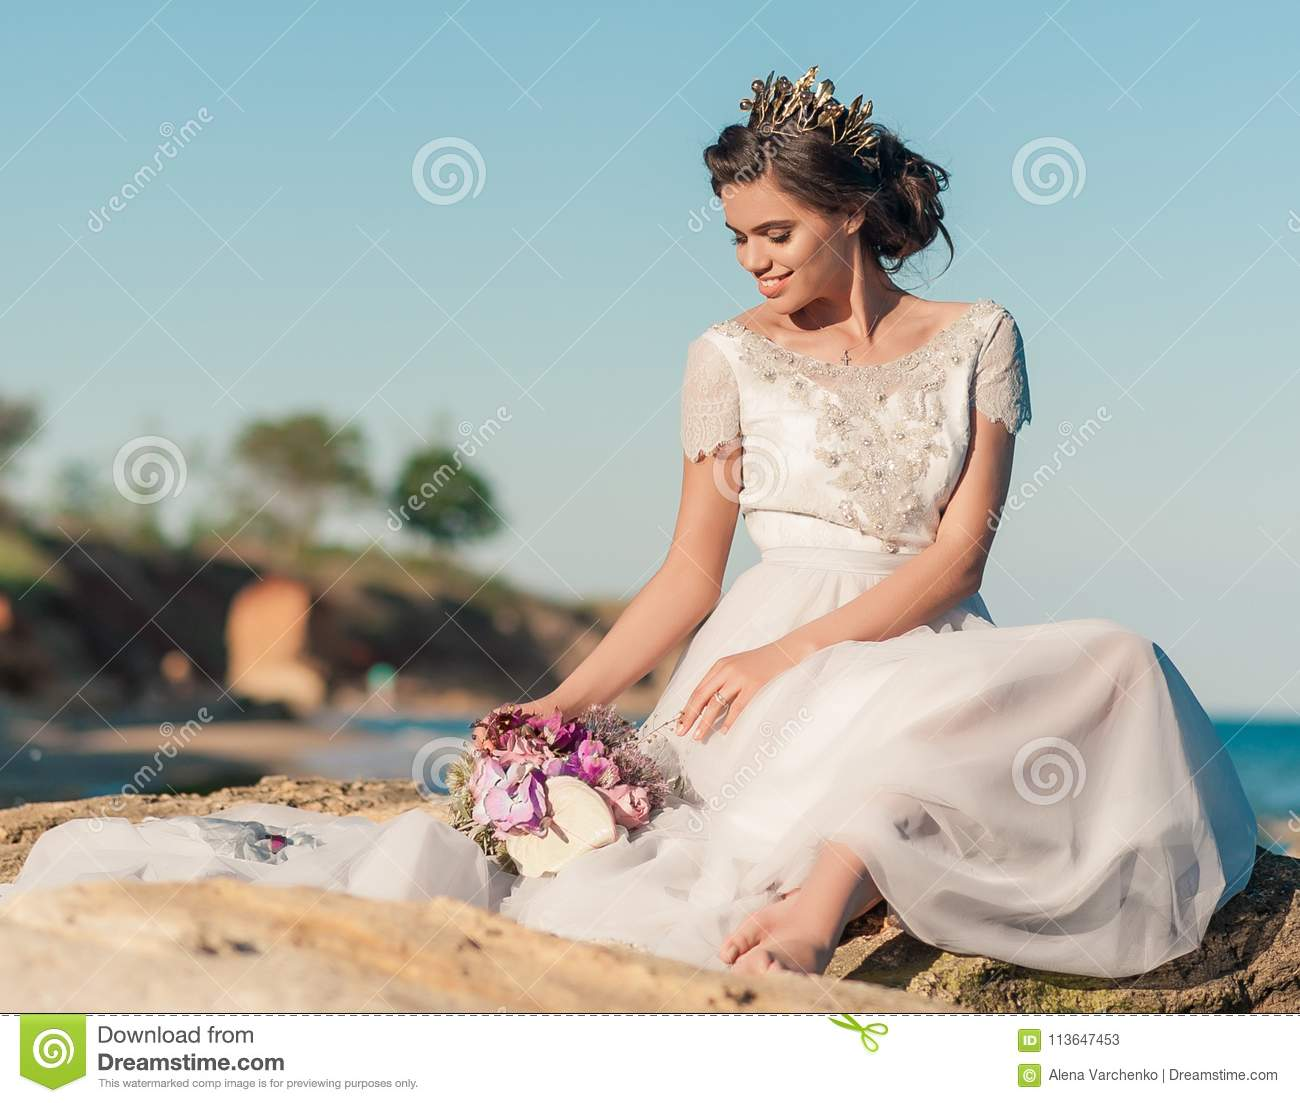 Beautiful Bride Outdoors Wedding Hairstyle And Make Up Outdoors Stock Image Image Of Diamond Hair 113647453